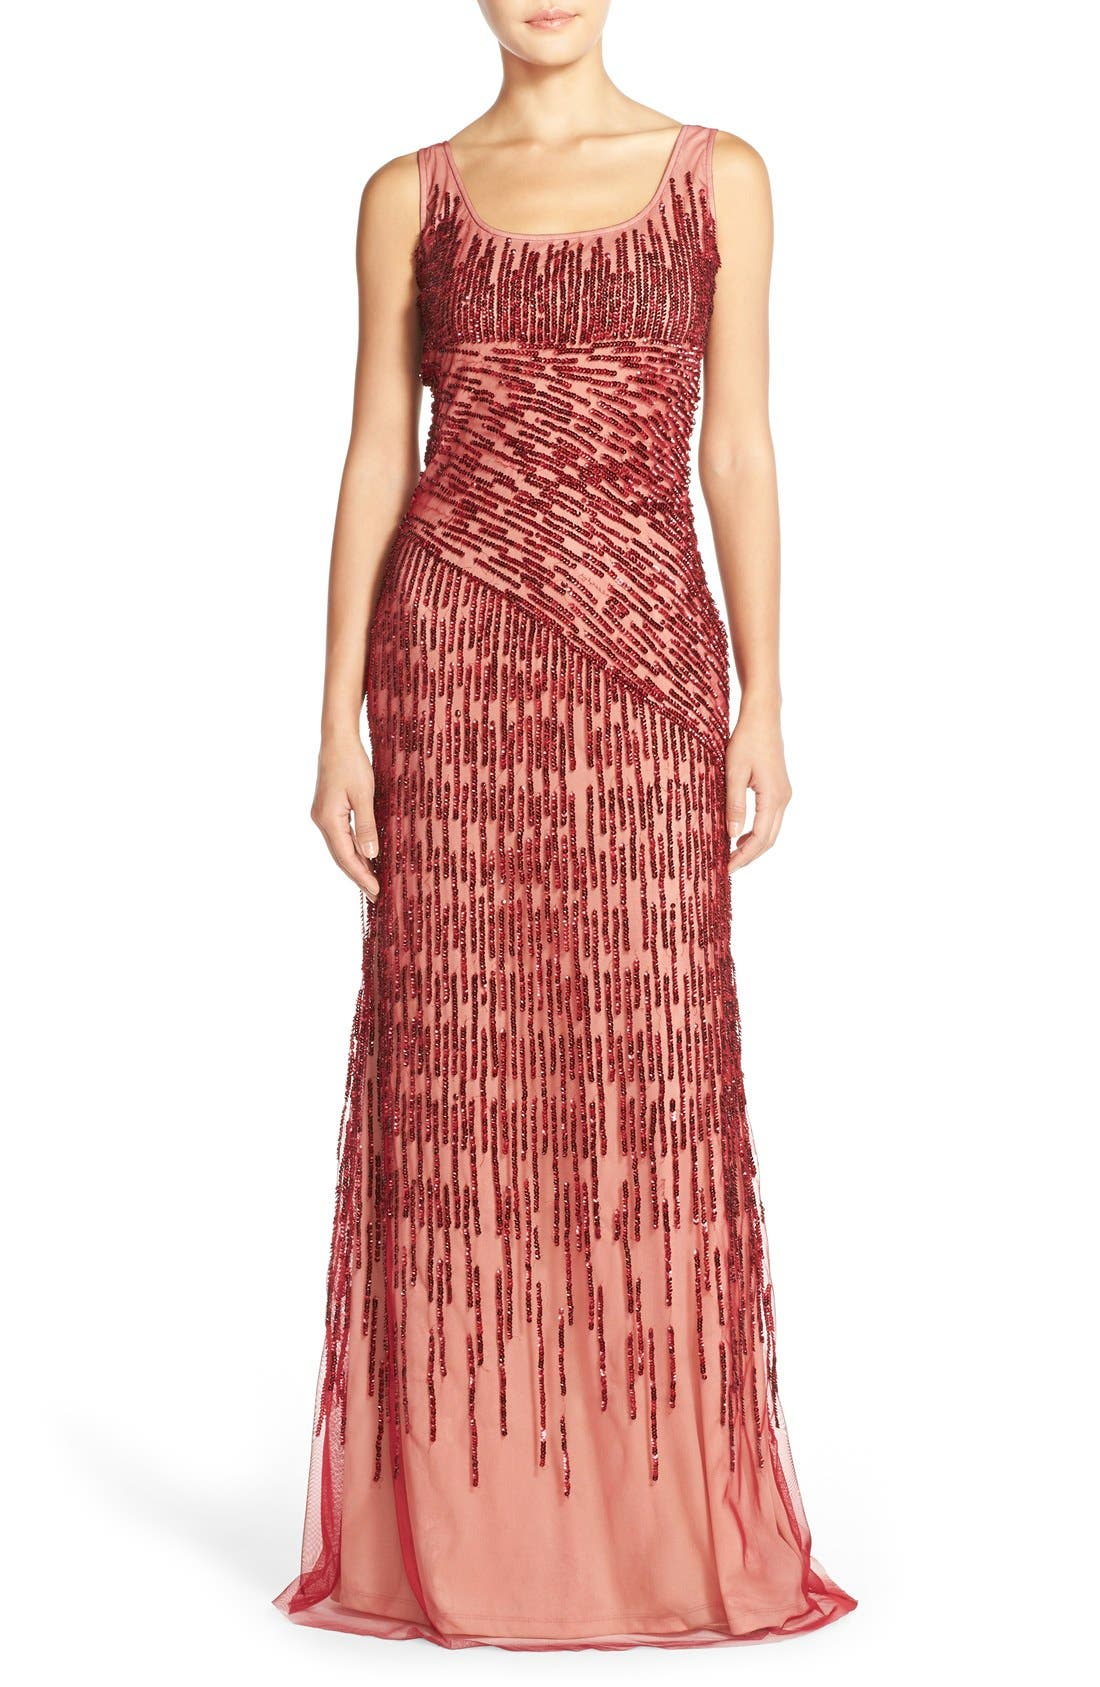 Alternate Image 1 Selected - Adrianna Papell Sequin Mesh Gown